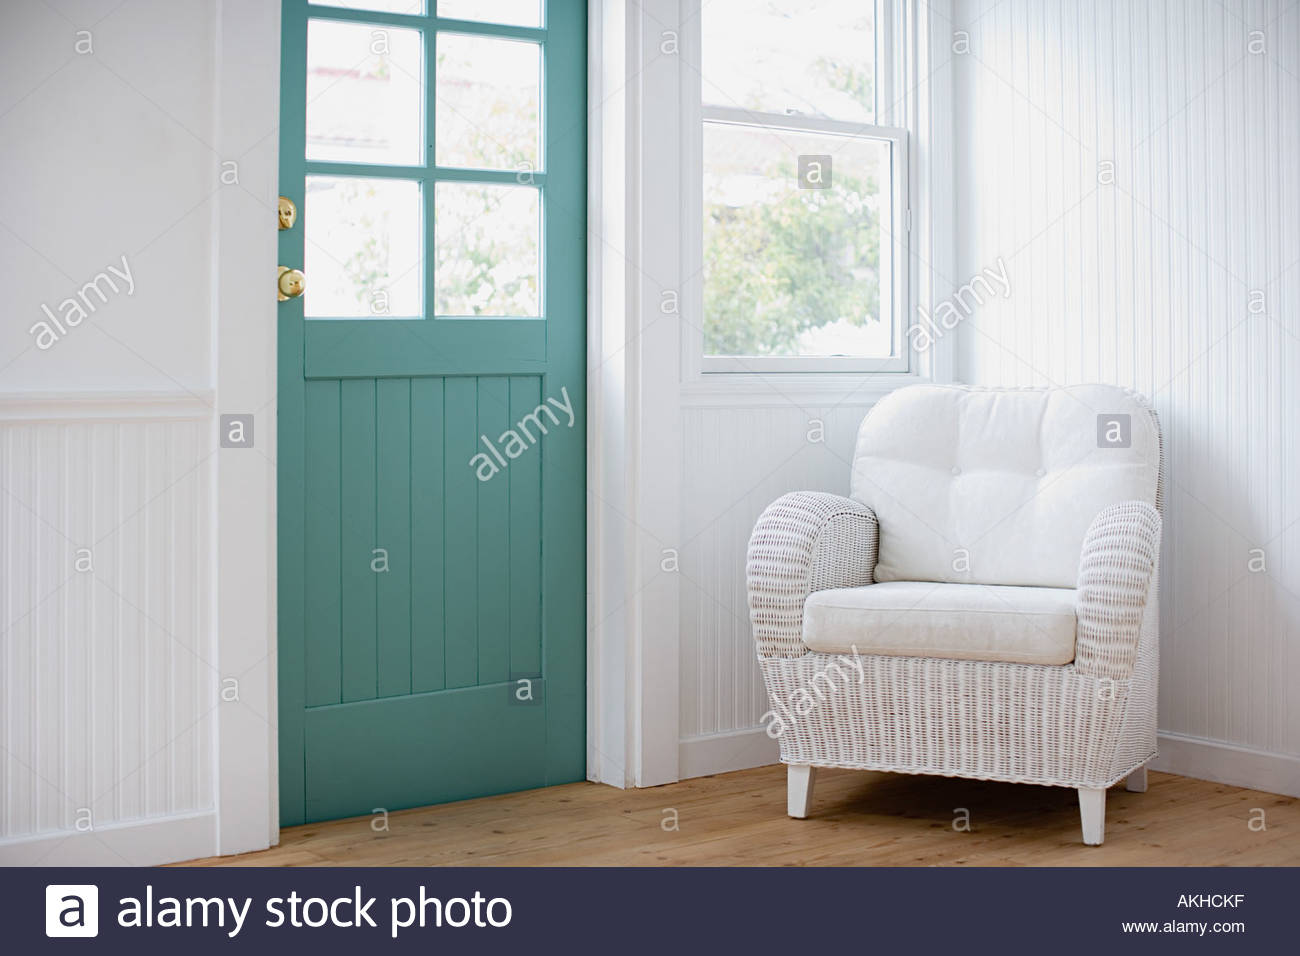 A peaceful corner - Stock Image